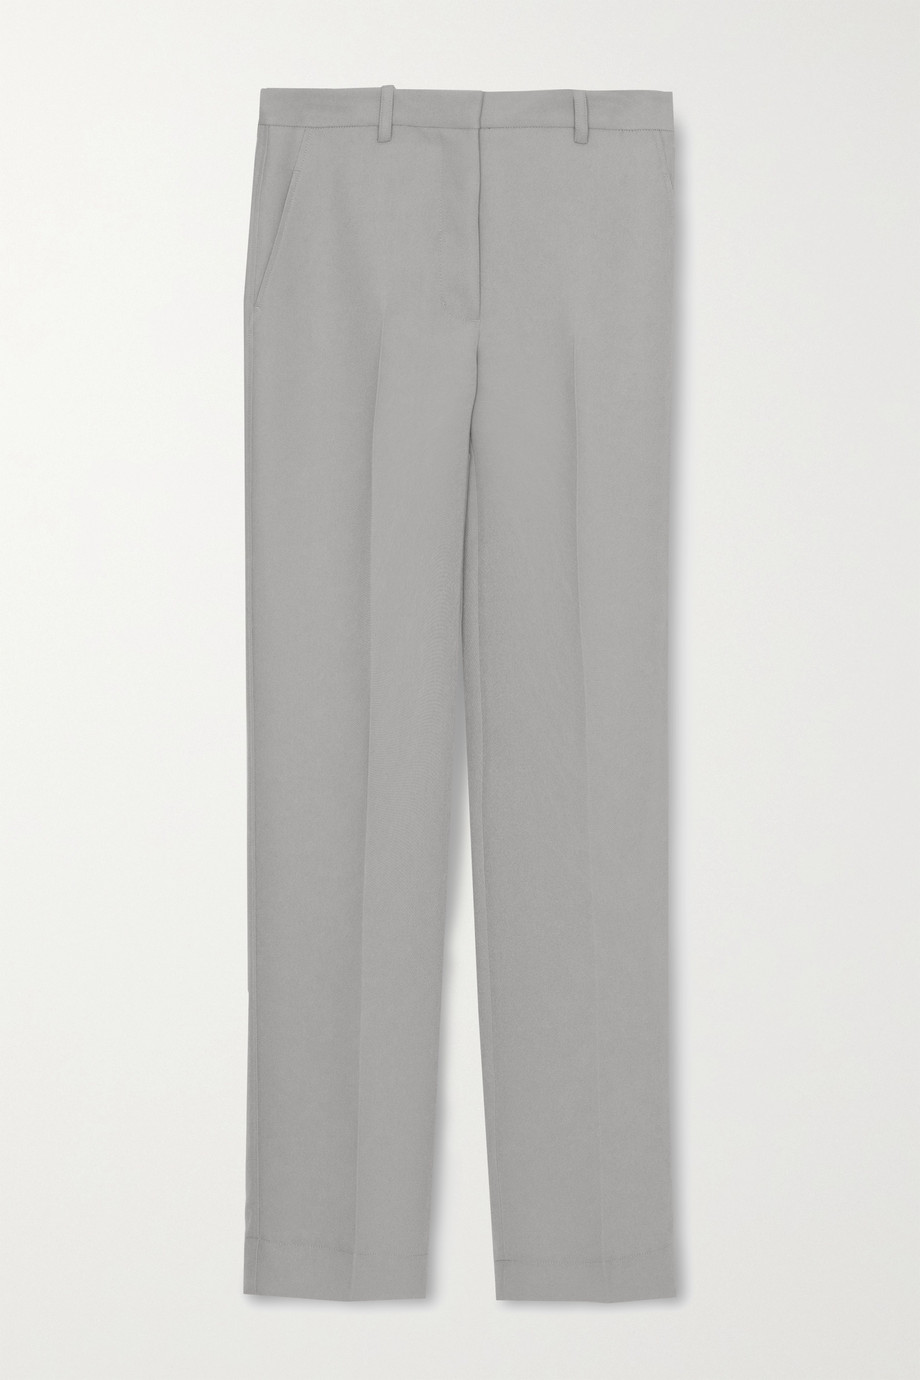 3.1 Phillip Lim Cady straight-leg pants